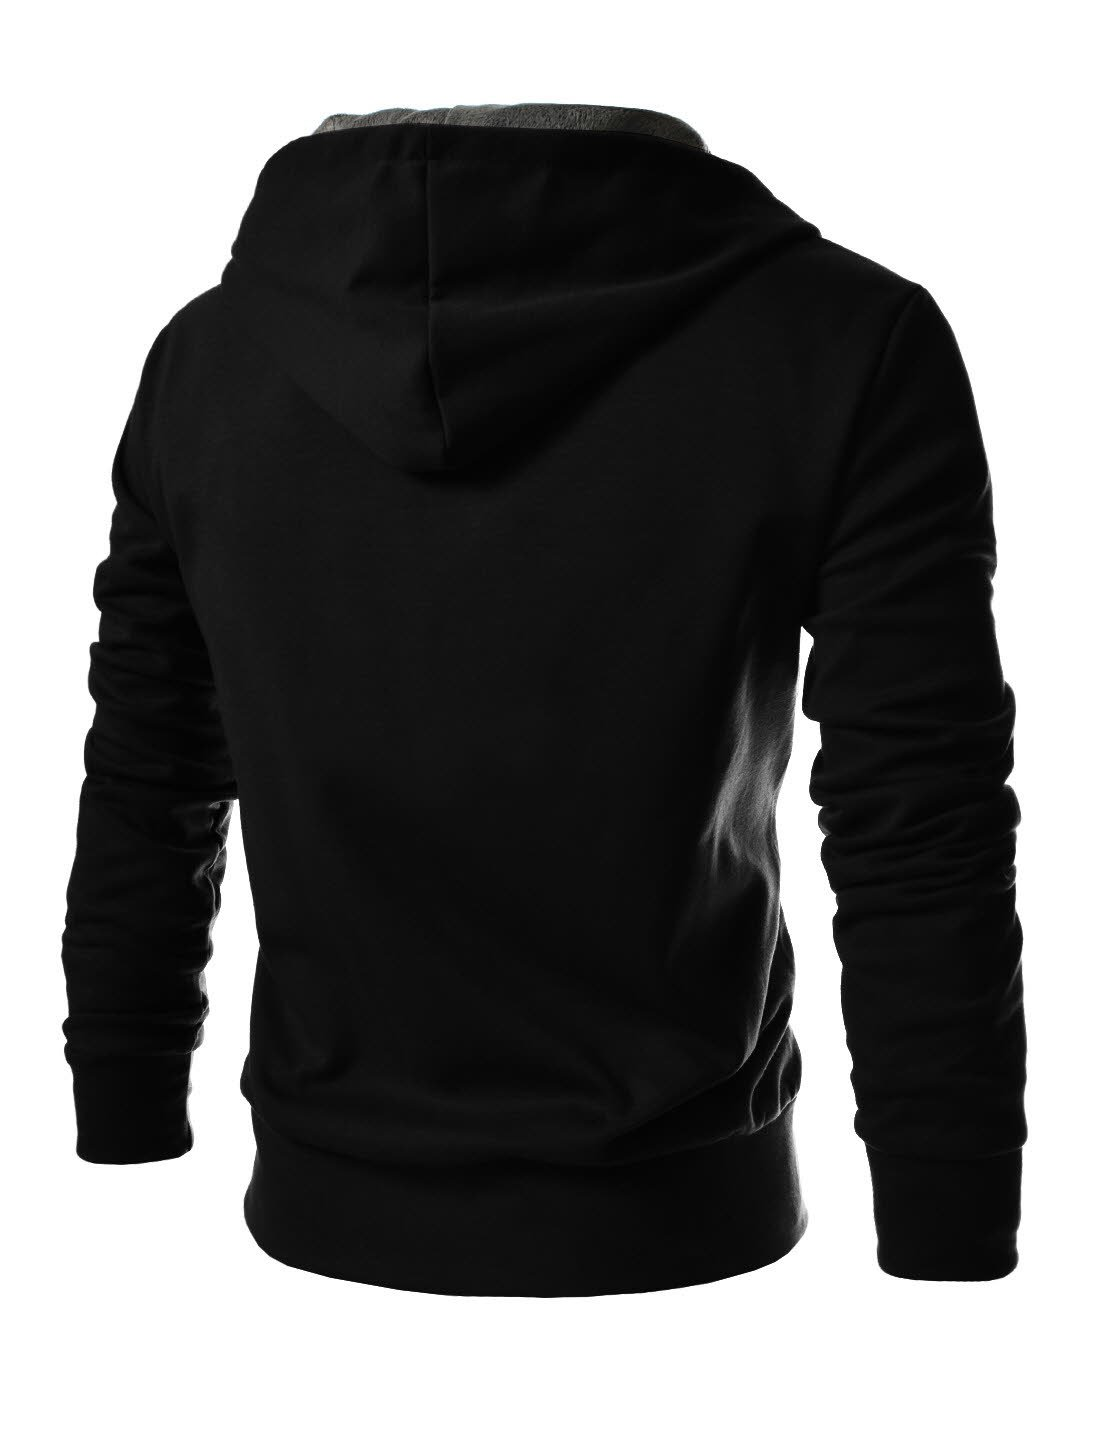 TheLees (R4BH) Mens Casual Luxury Buckle Hoodie Slim Cotton Sweatshirts BLACK US XS(Tag size M) by TheLees (Image #3)